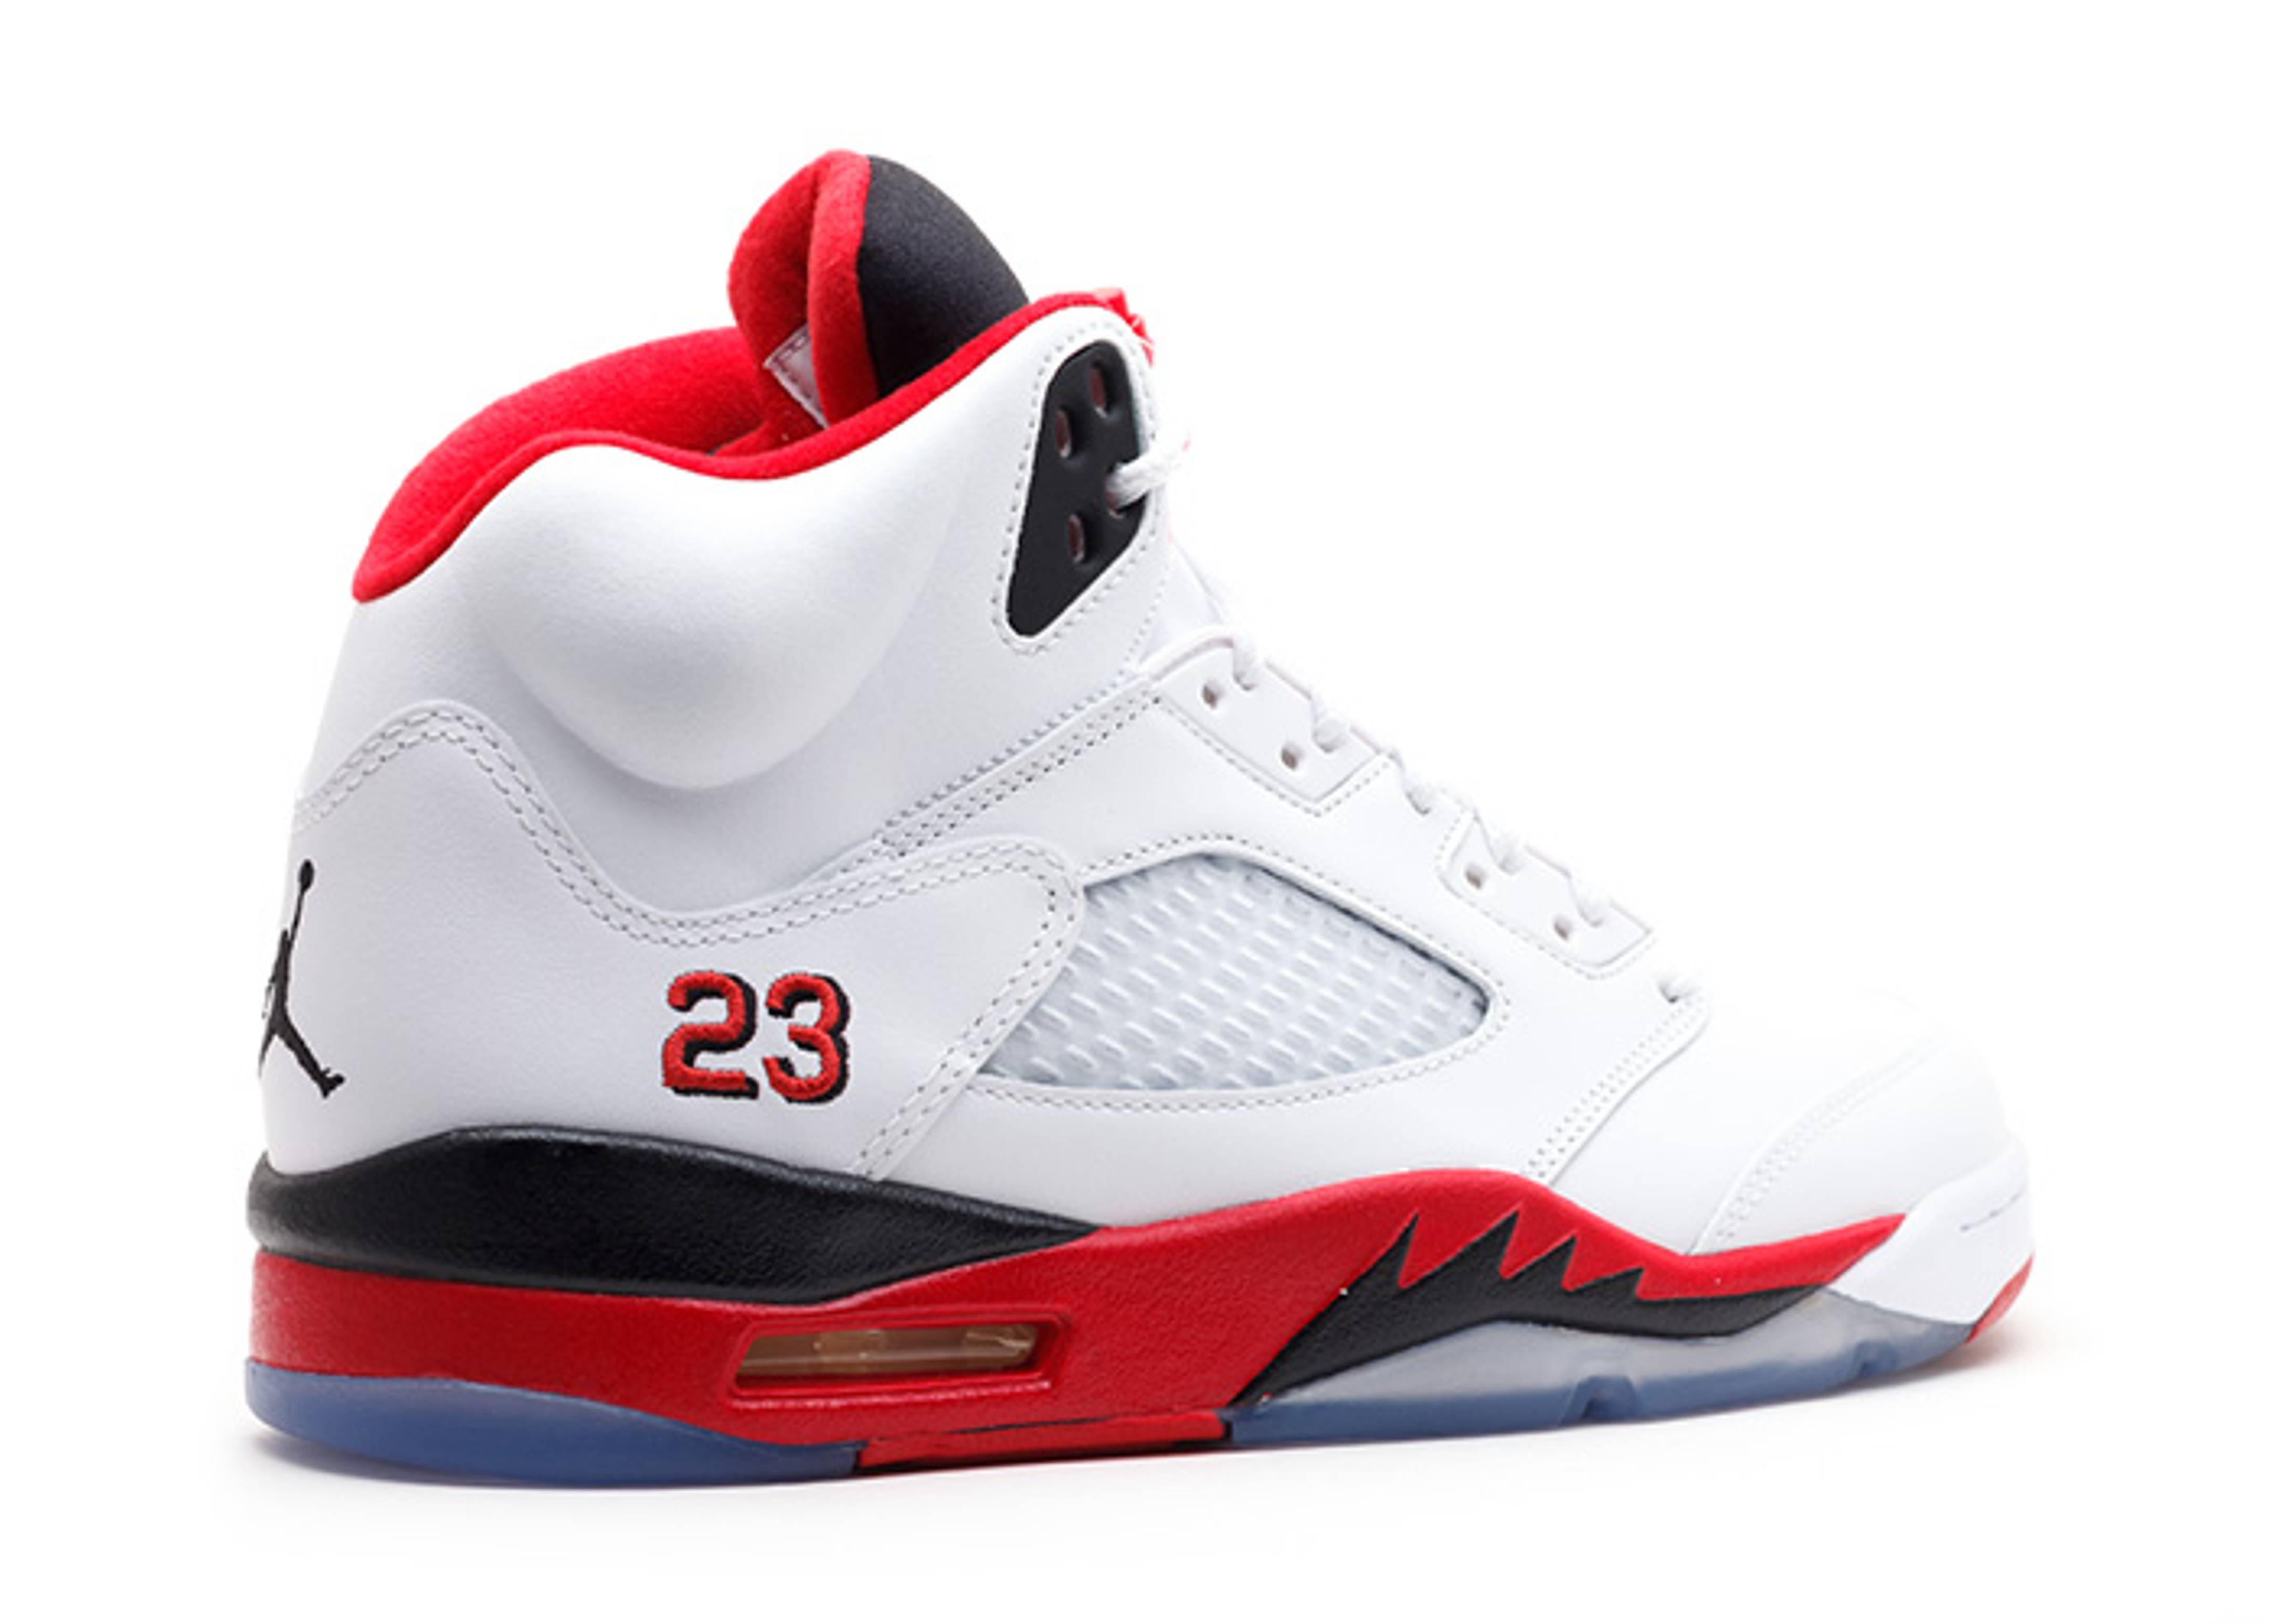 the gallery for gt jordan 5 fire red black tongue